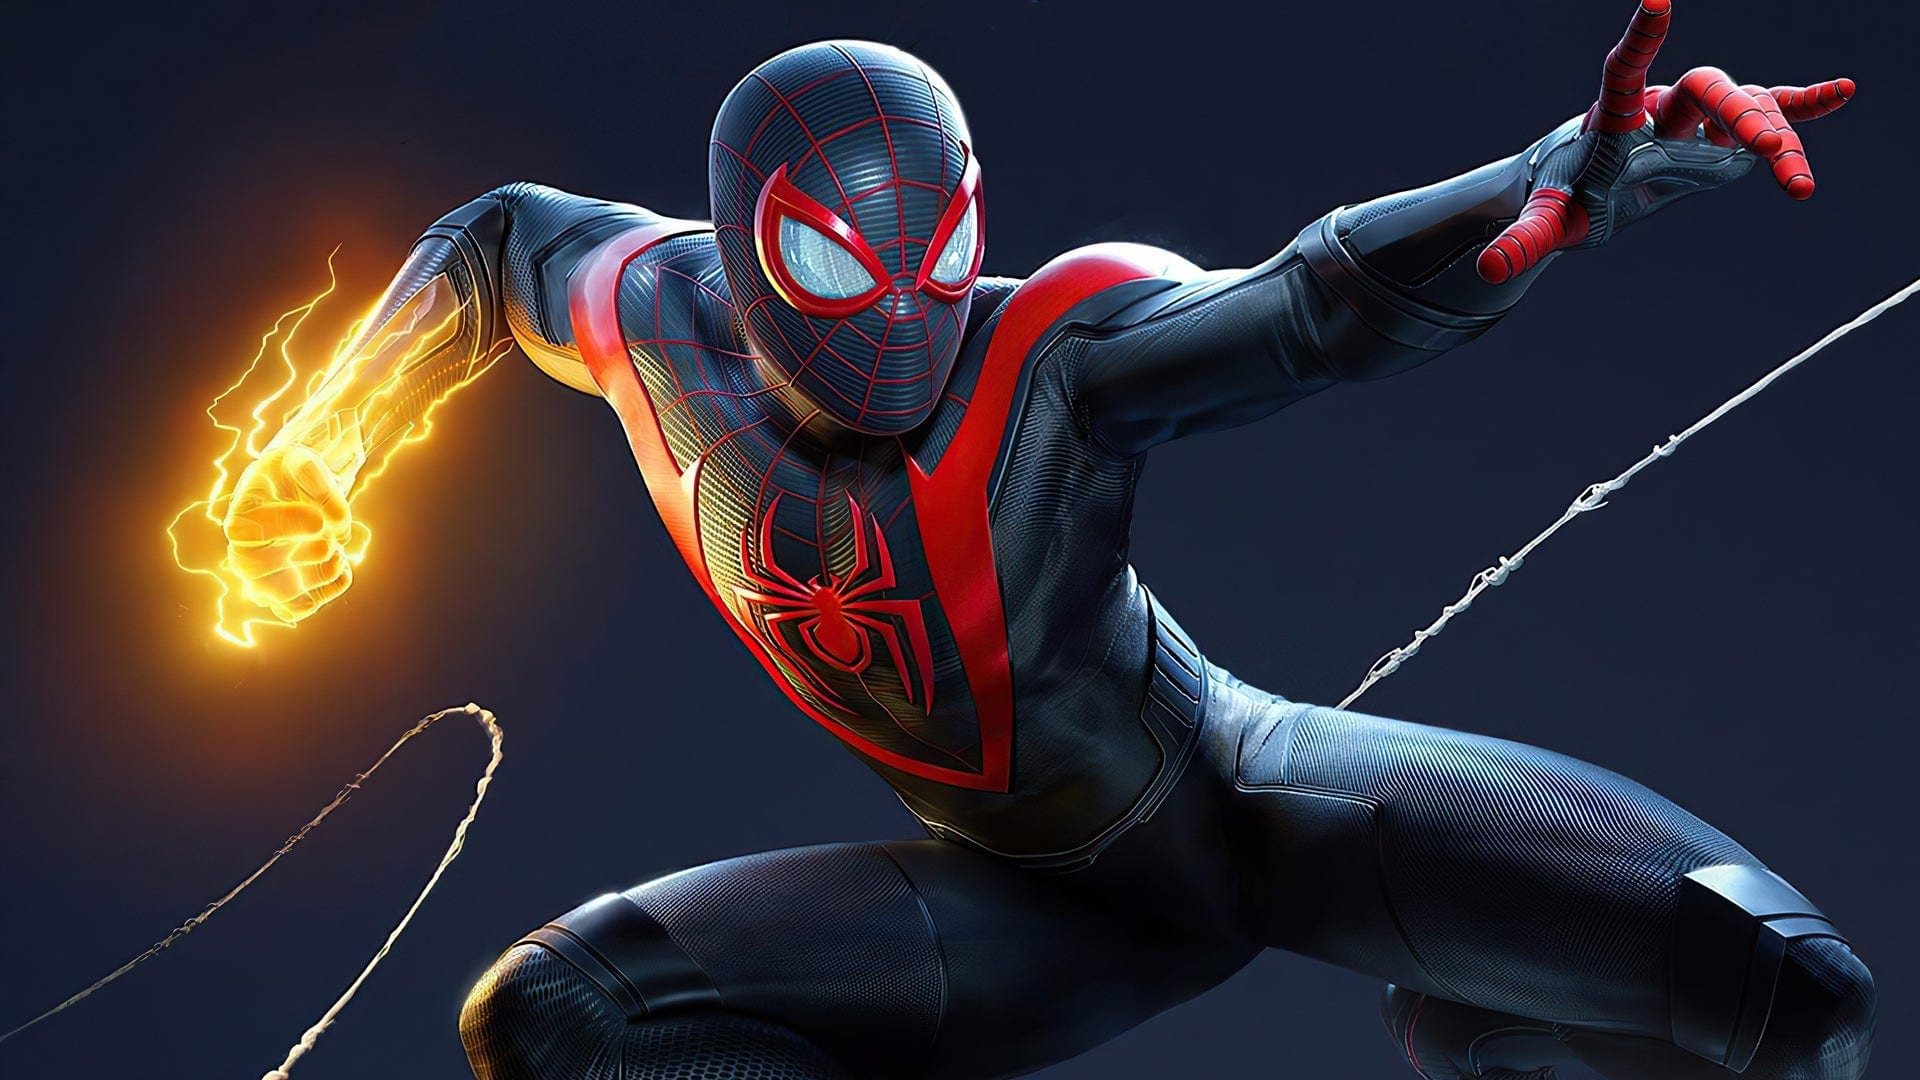 Spider-Man Miles Morales Replace Provides 60FPS Mode With Ray Tracing 1